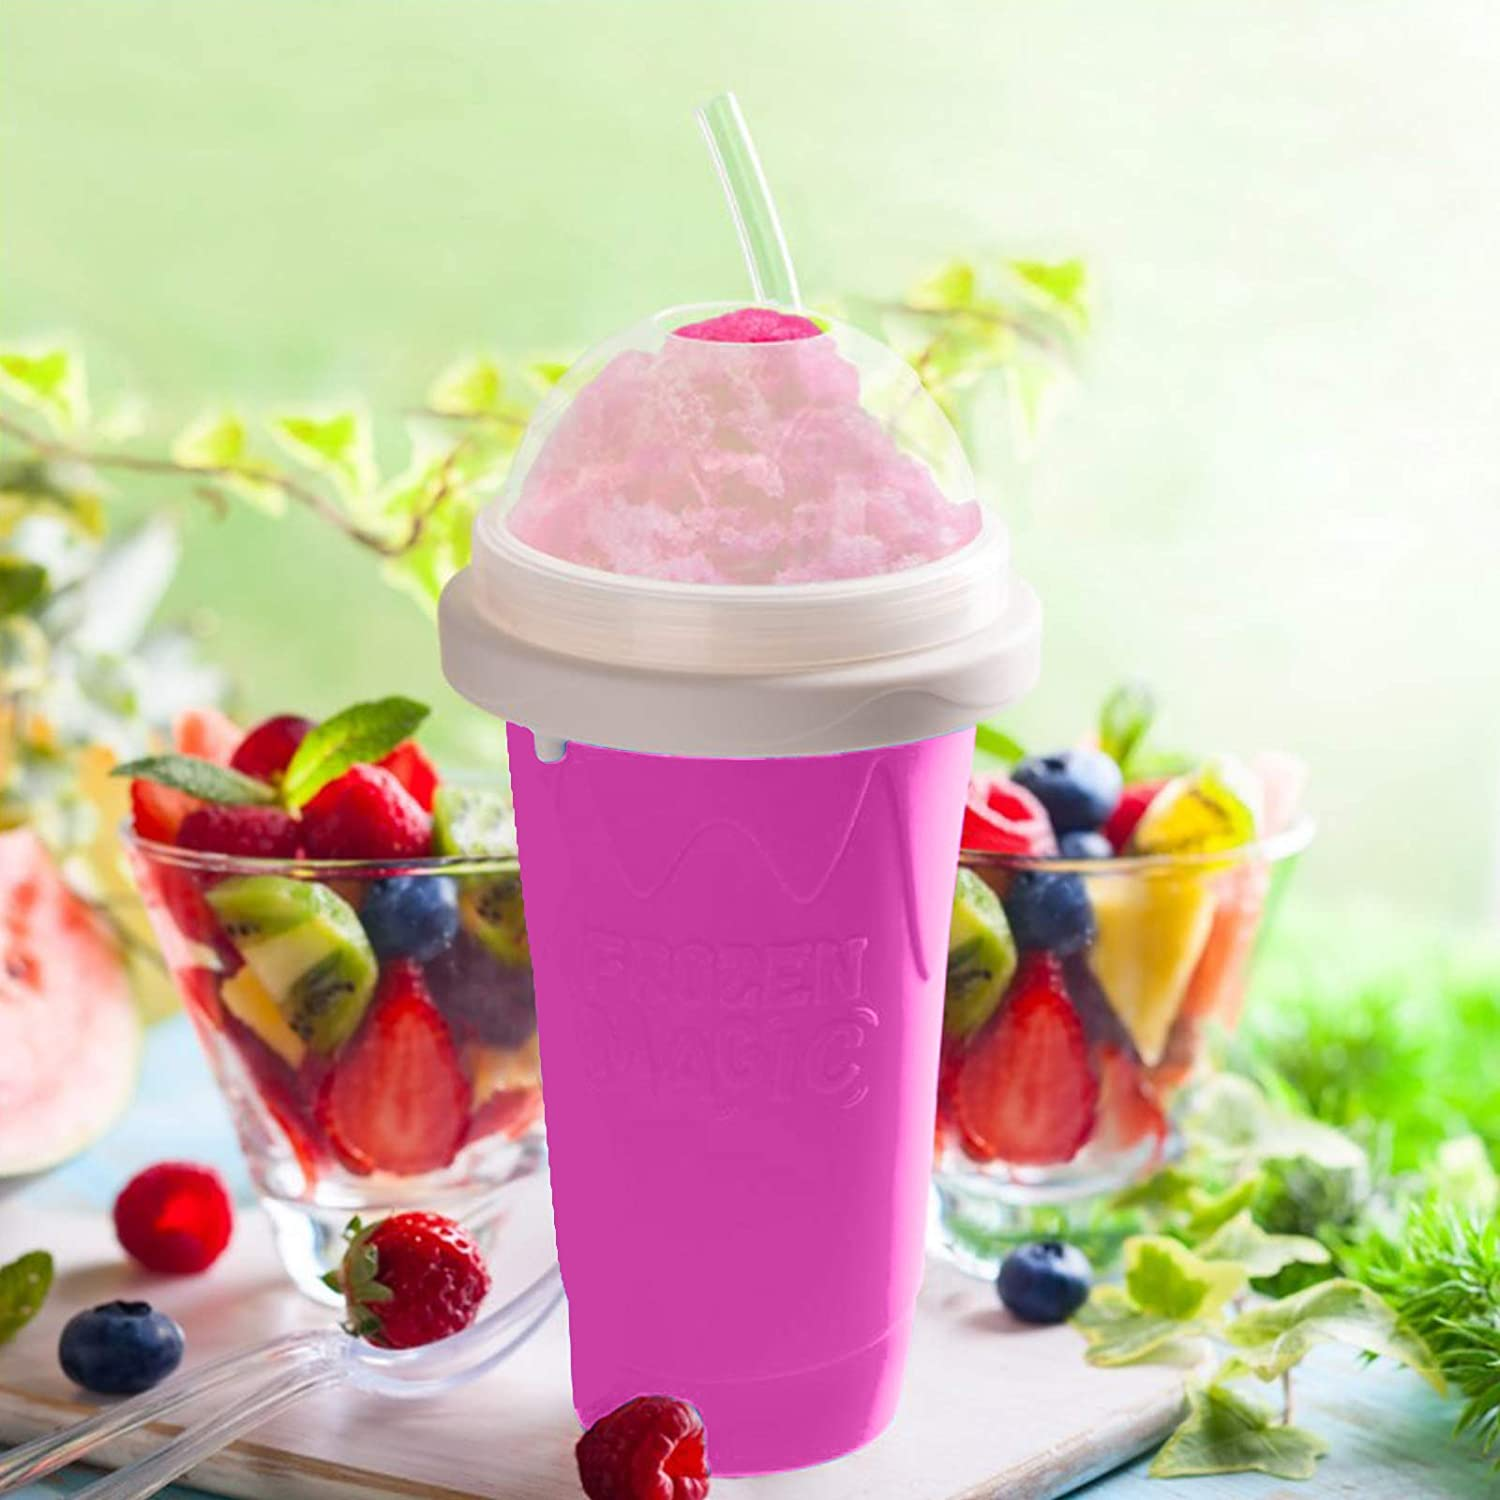 Magic Slushy Maker Squeeze Cup Slushy Maker DIY Homemade Smoothie Cups Freeze Drinks Cup Double Layer Summer Juice Ice Cream Cup Blue